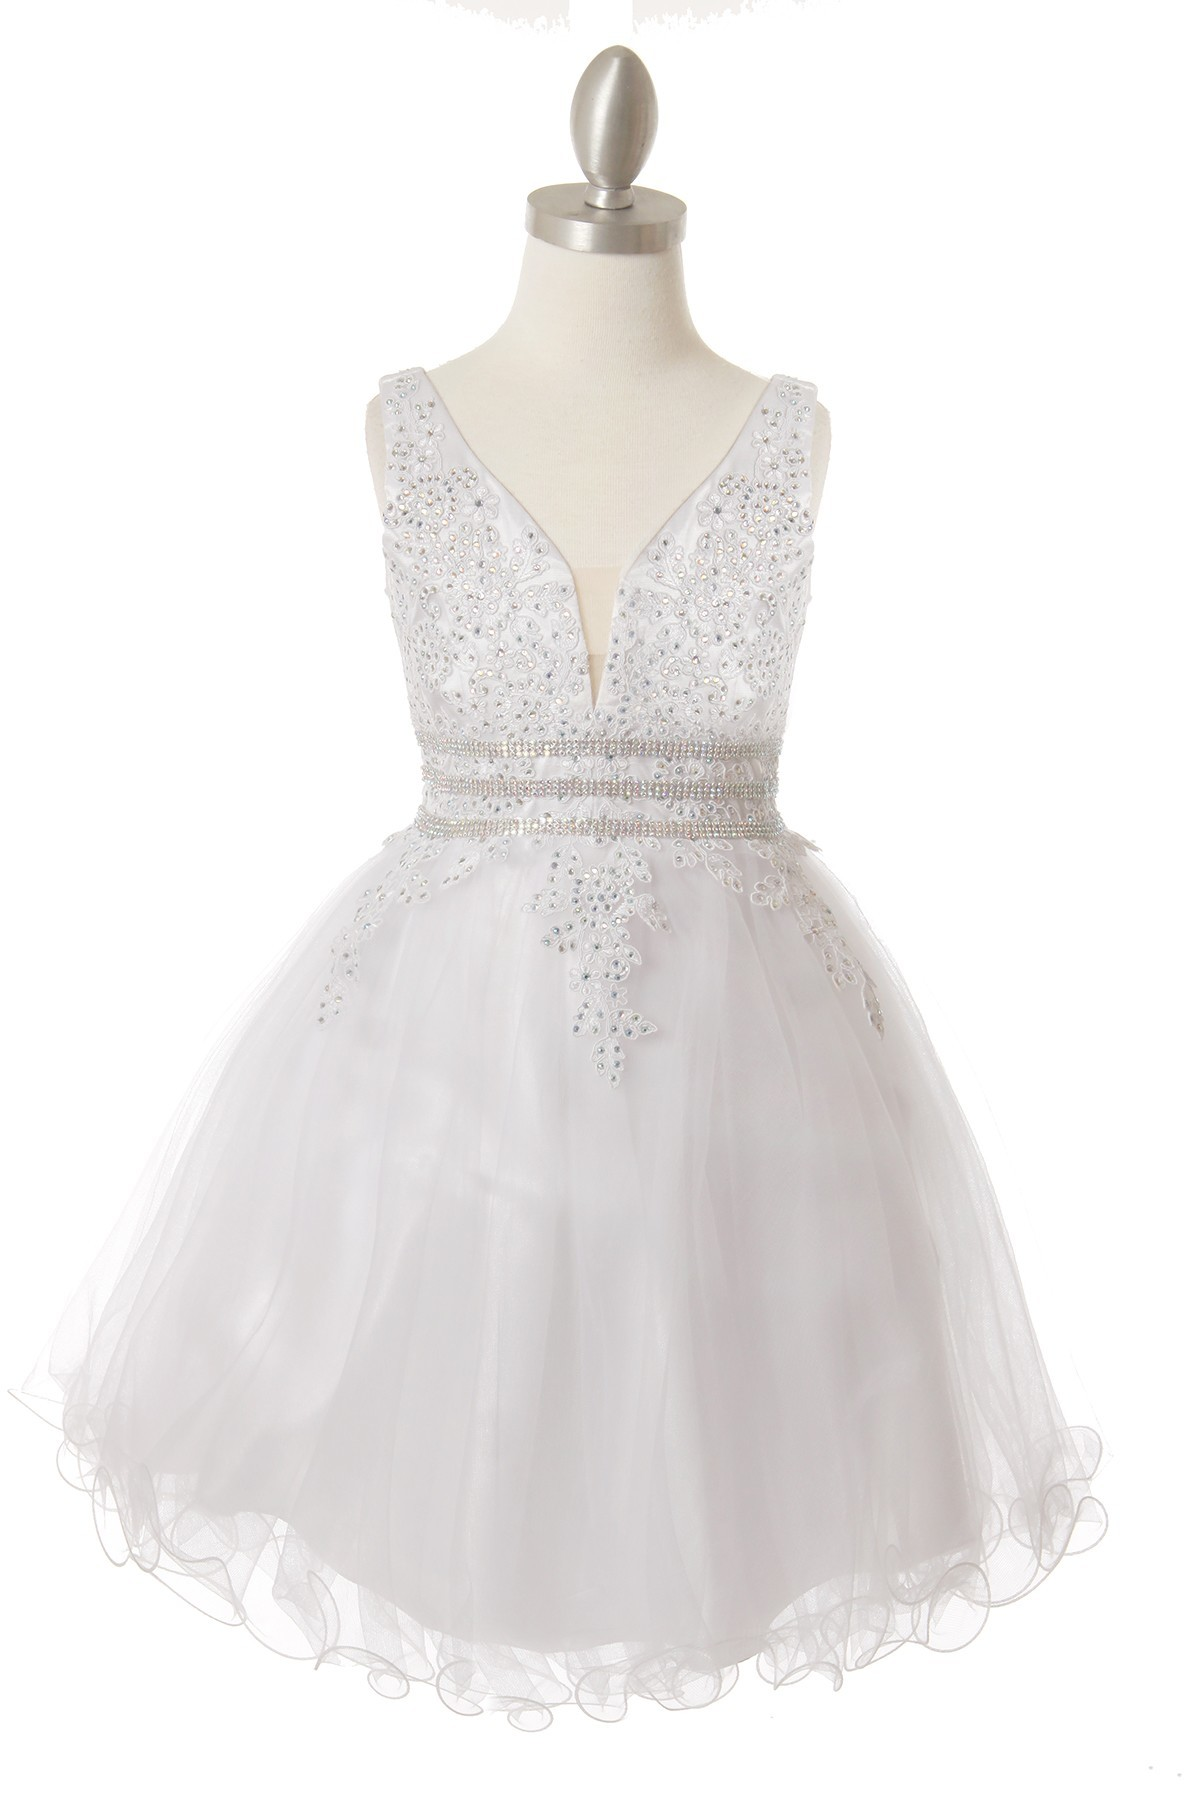 Girls short tulle white dress